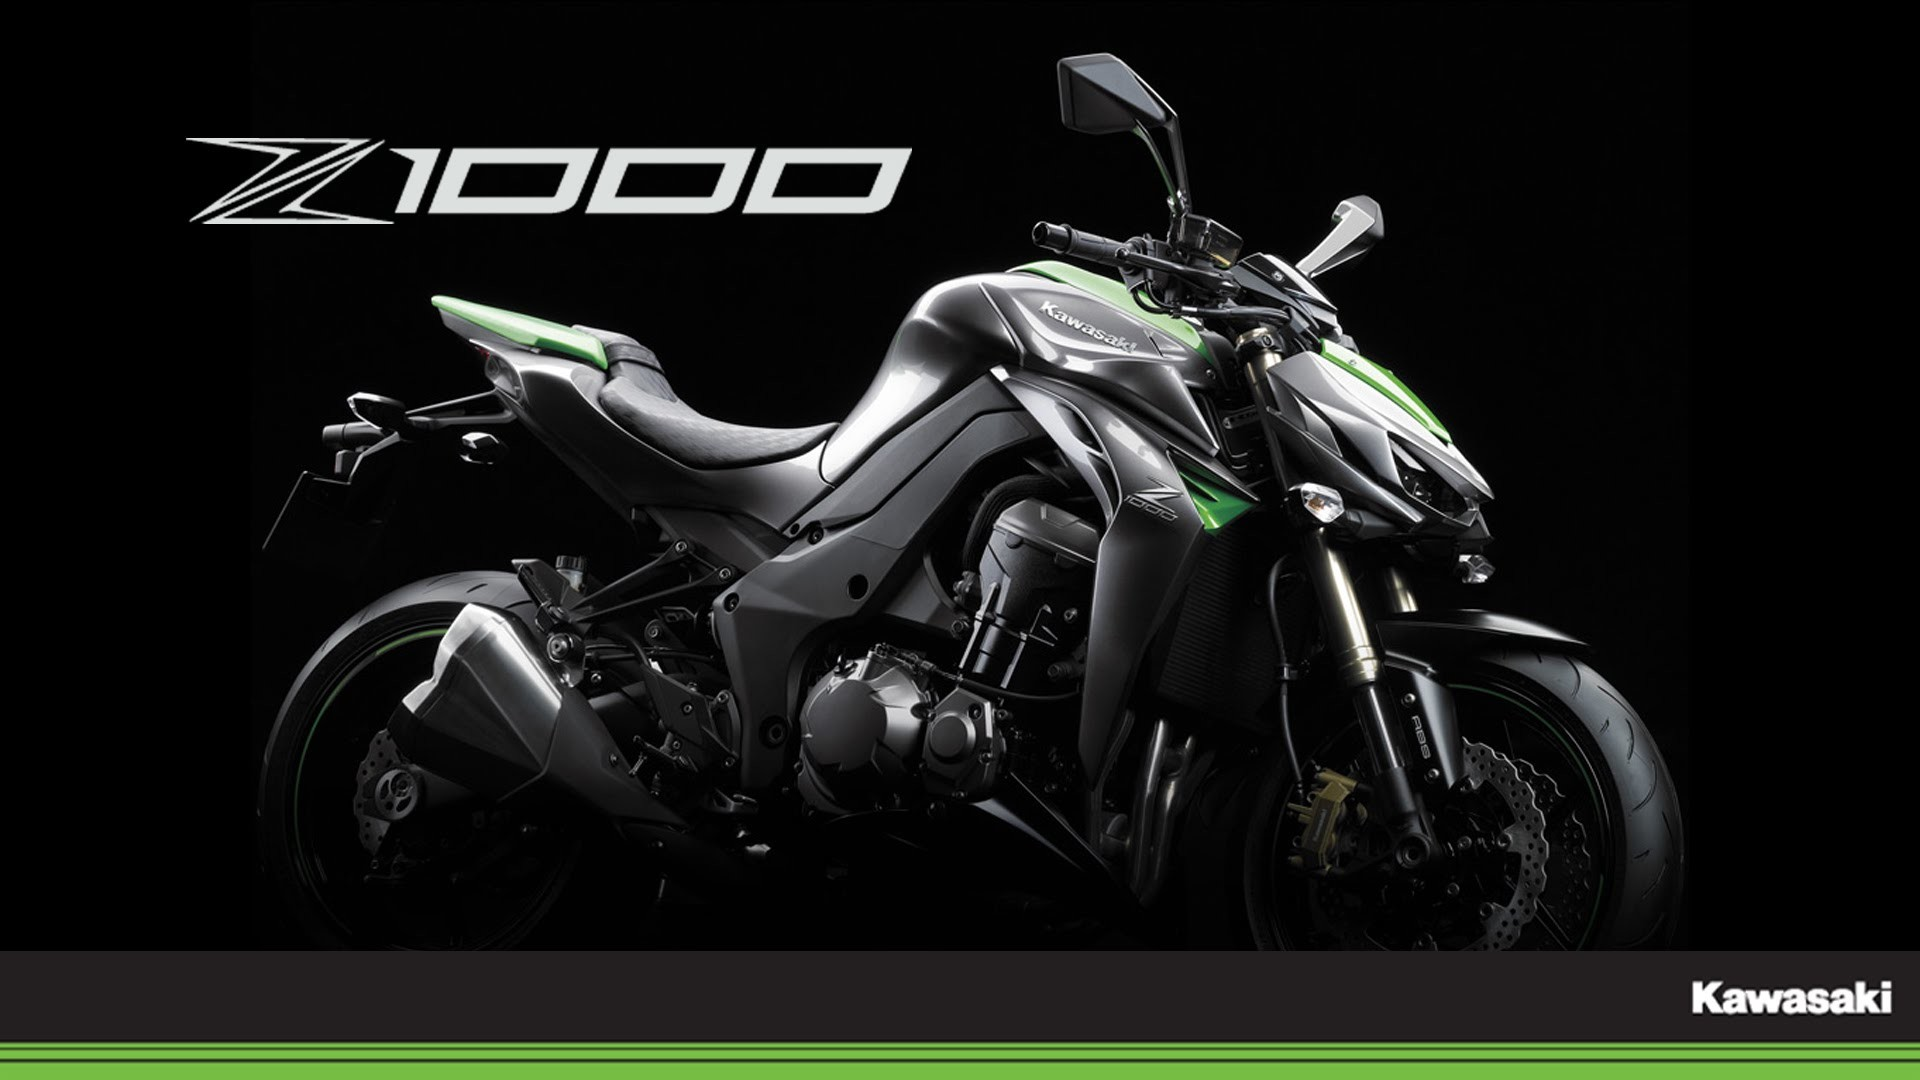 1920x1080 Kawasaki Z1000sx Image Best Hd Wallpaper